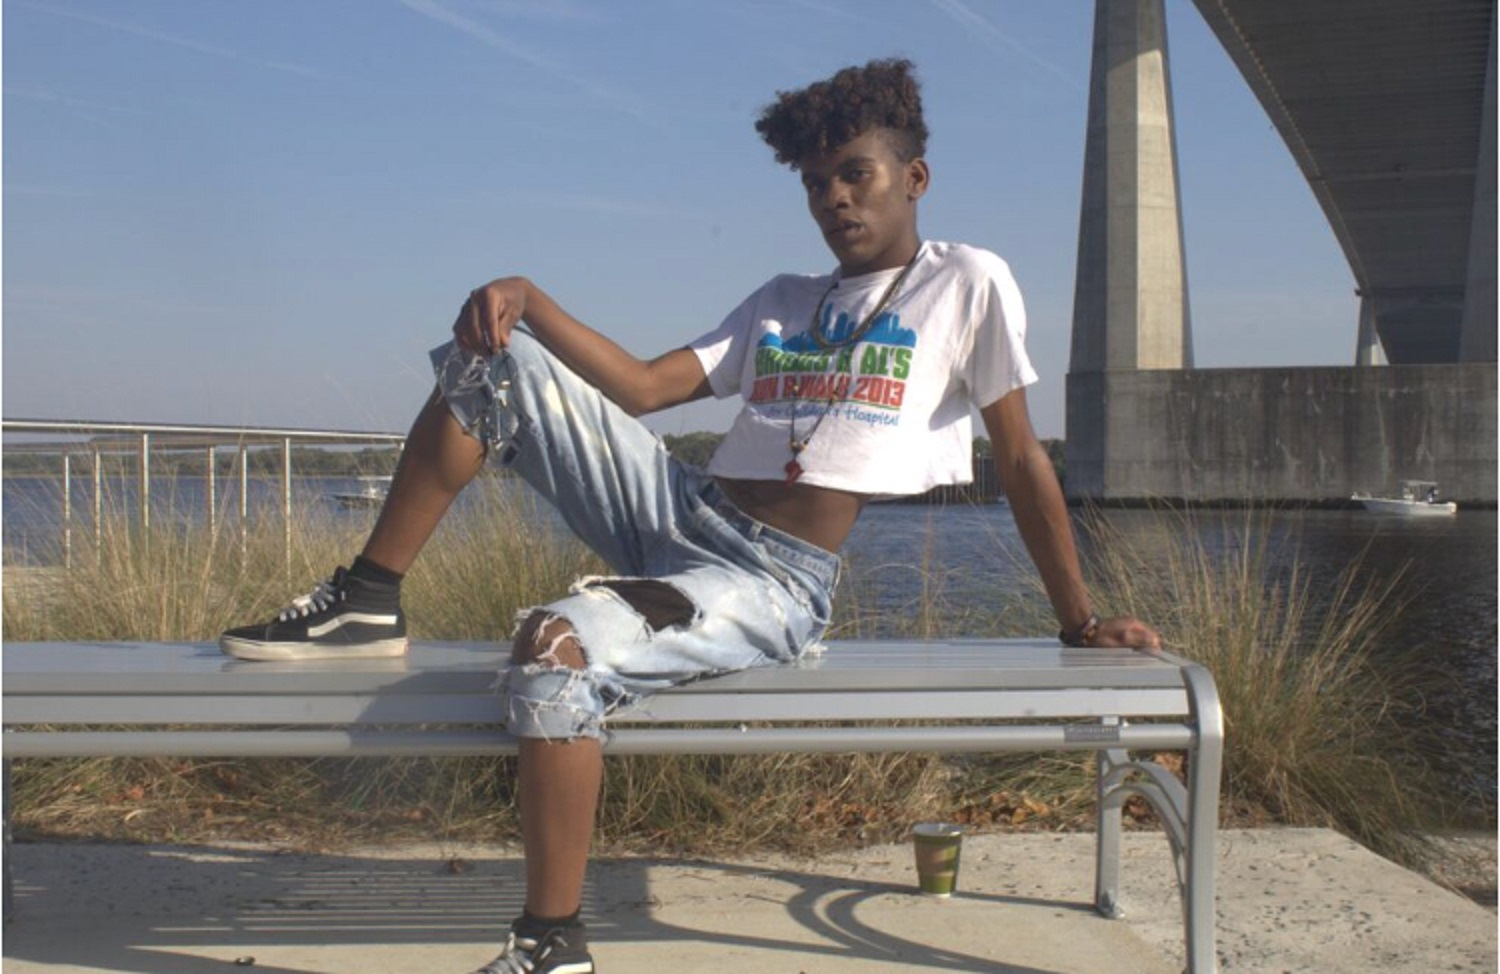 Graphic Summer - Delucollect Top / Levi's Pants (He did the distressing details himself) / American Eagle Flannel / Nike's Huarache Sneakers / Name Plated African Yarn Necklace & Bracelet Handmade from Congo / Ebay Gold Cross Necklace / Walmart Black Ankle Socks